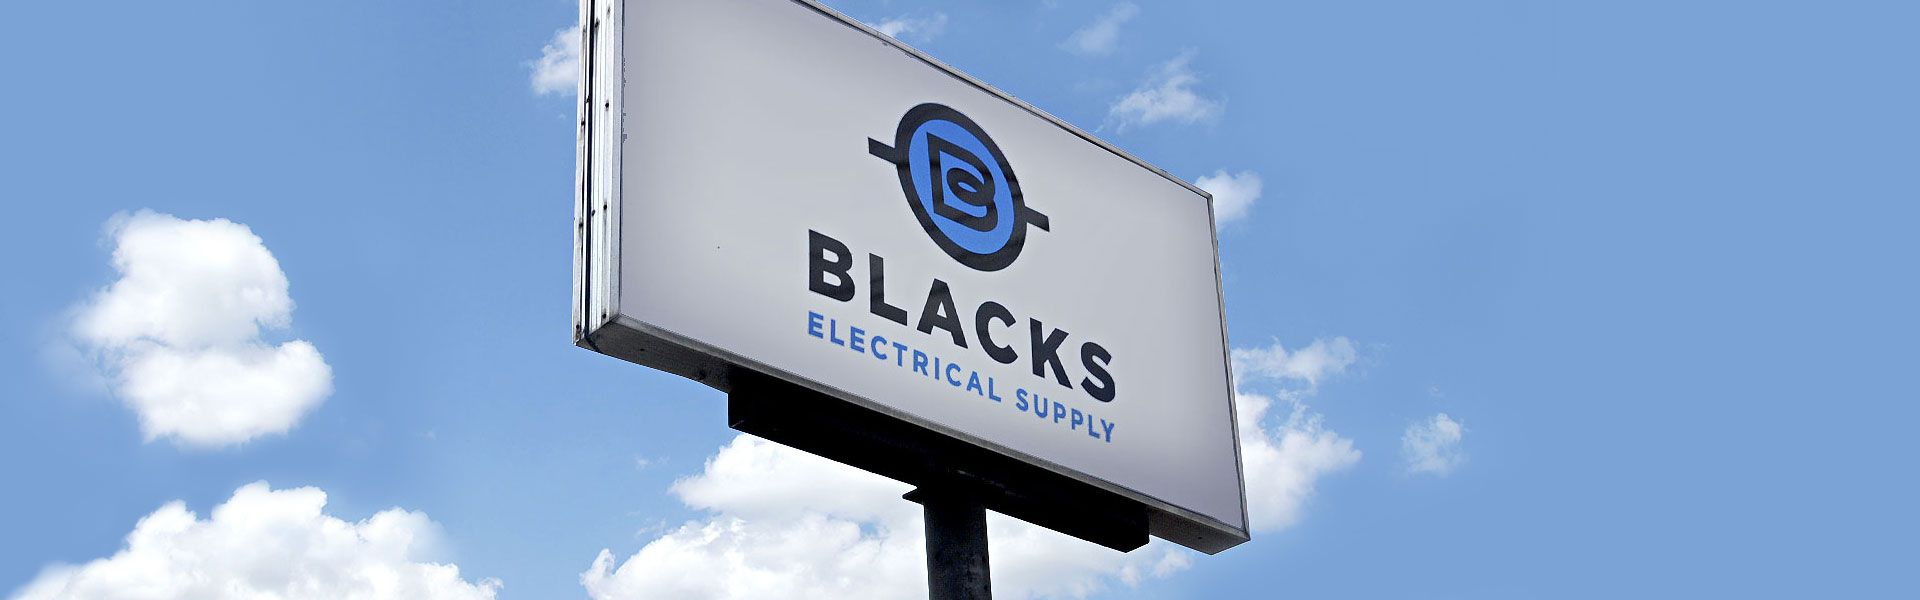 Blacks Electrical Supply - Store Sign